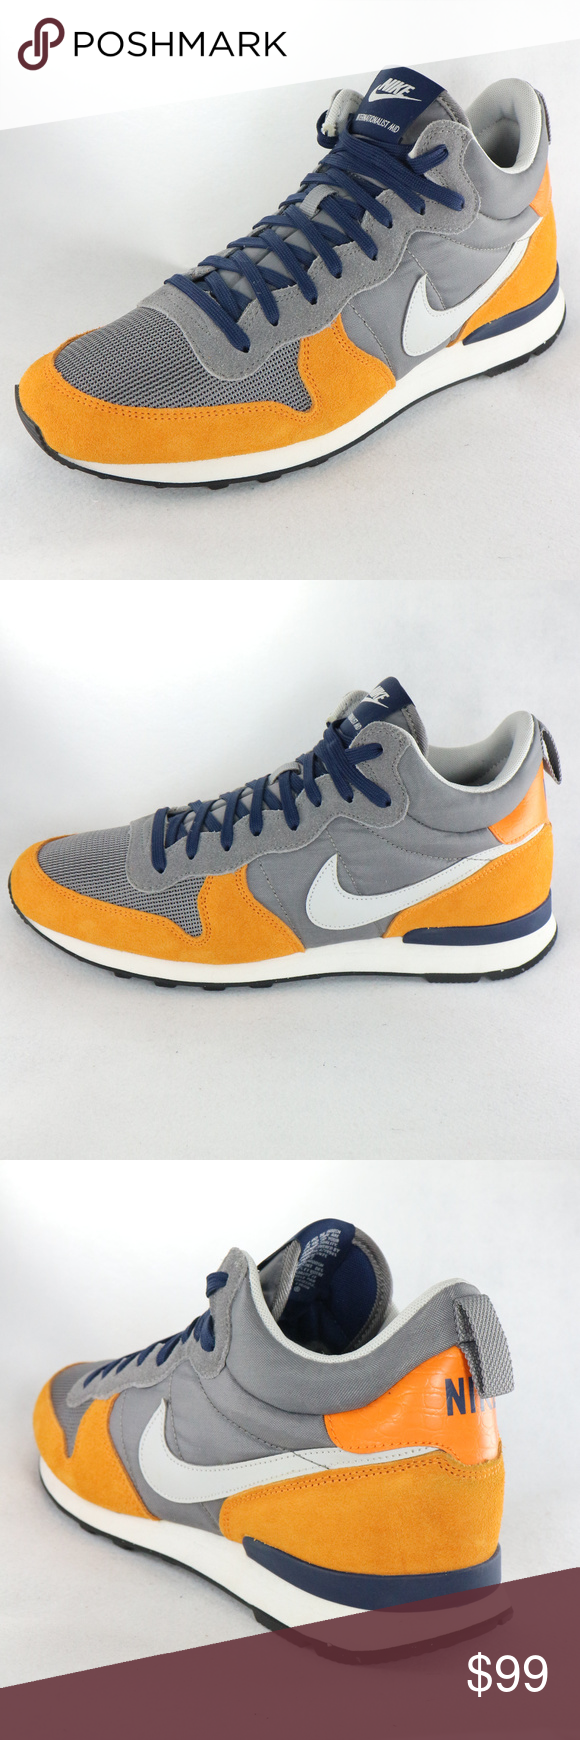 b4f2183f0e3 NIKE Internationalist Mid PRM Light Ash Copper Super clean 2014 Nike  Internationalist and like new condition